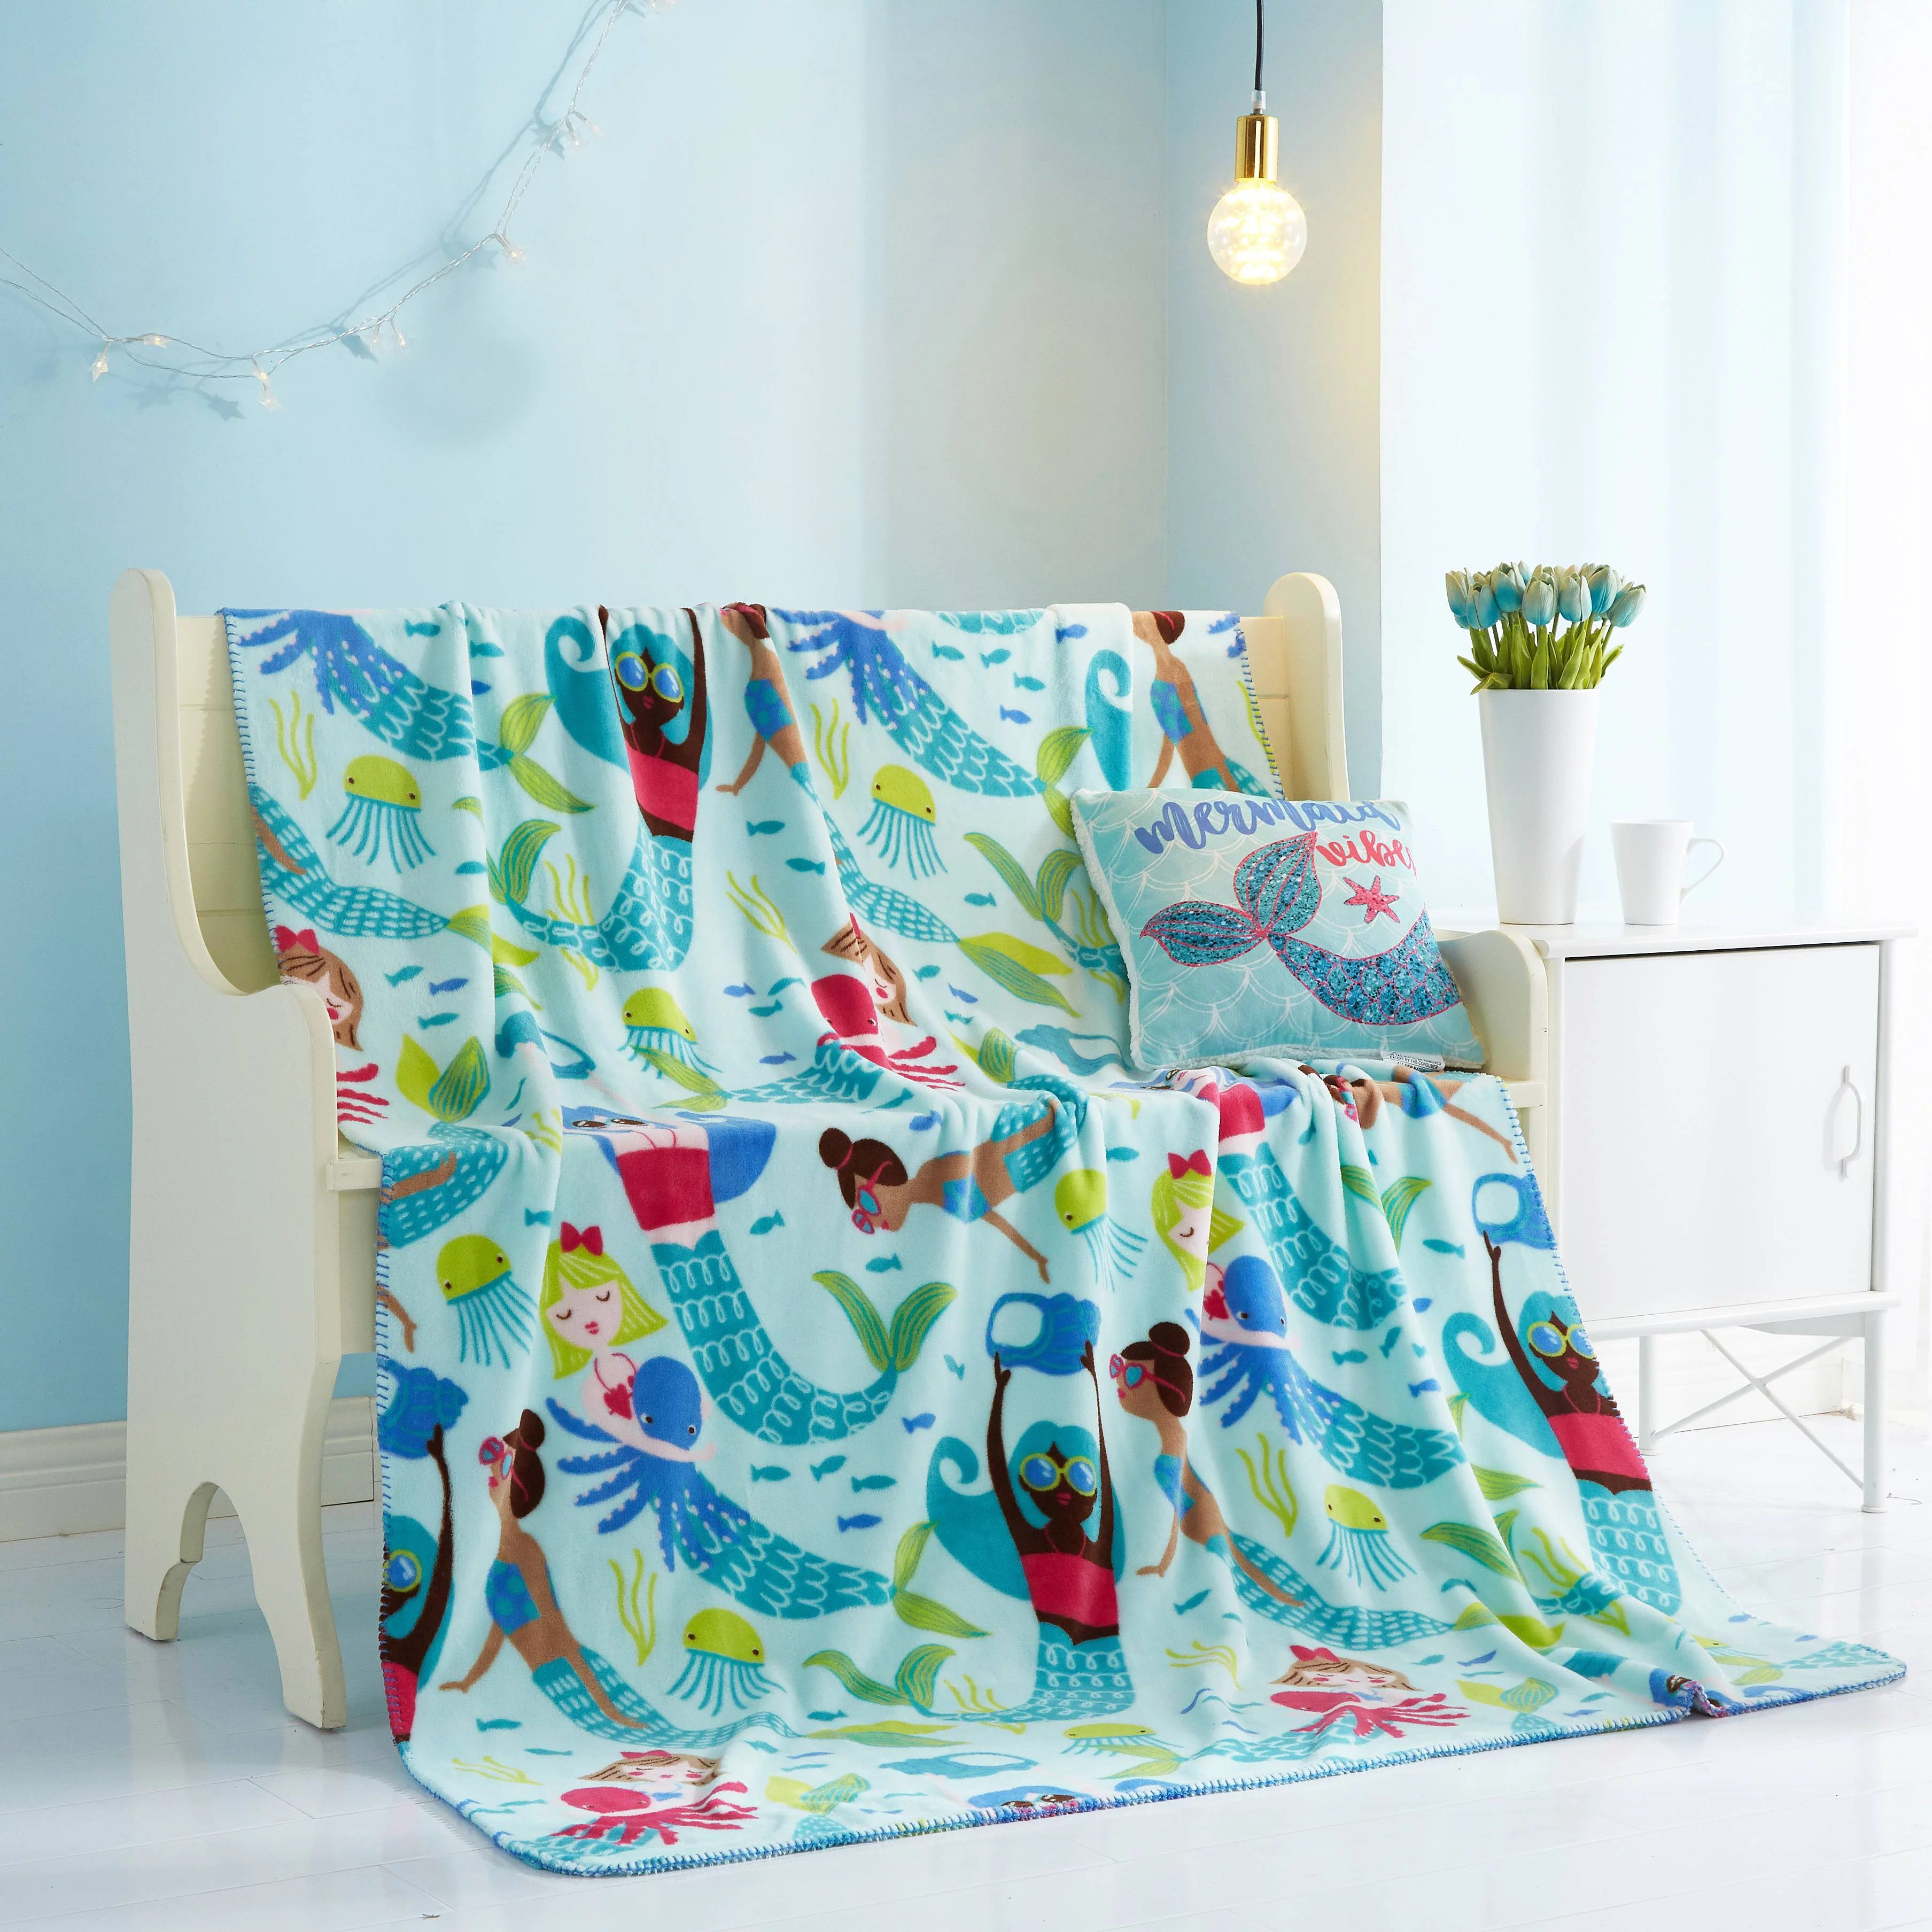 mermaid plush pillow throw combo for kids by your zone walmart com